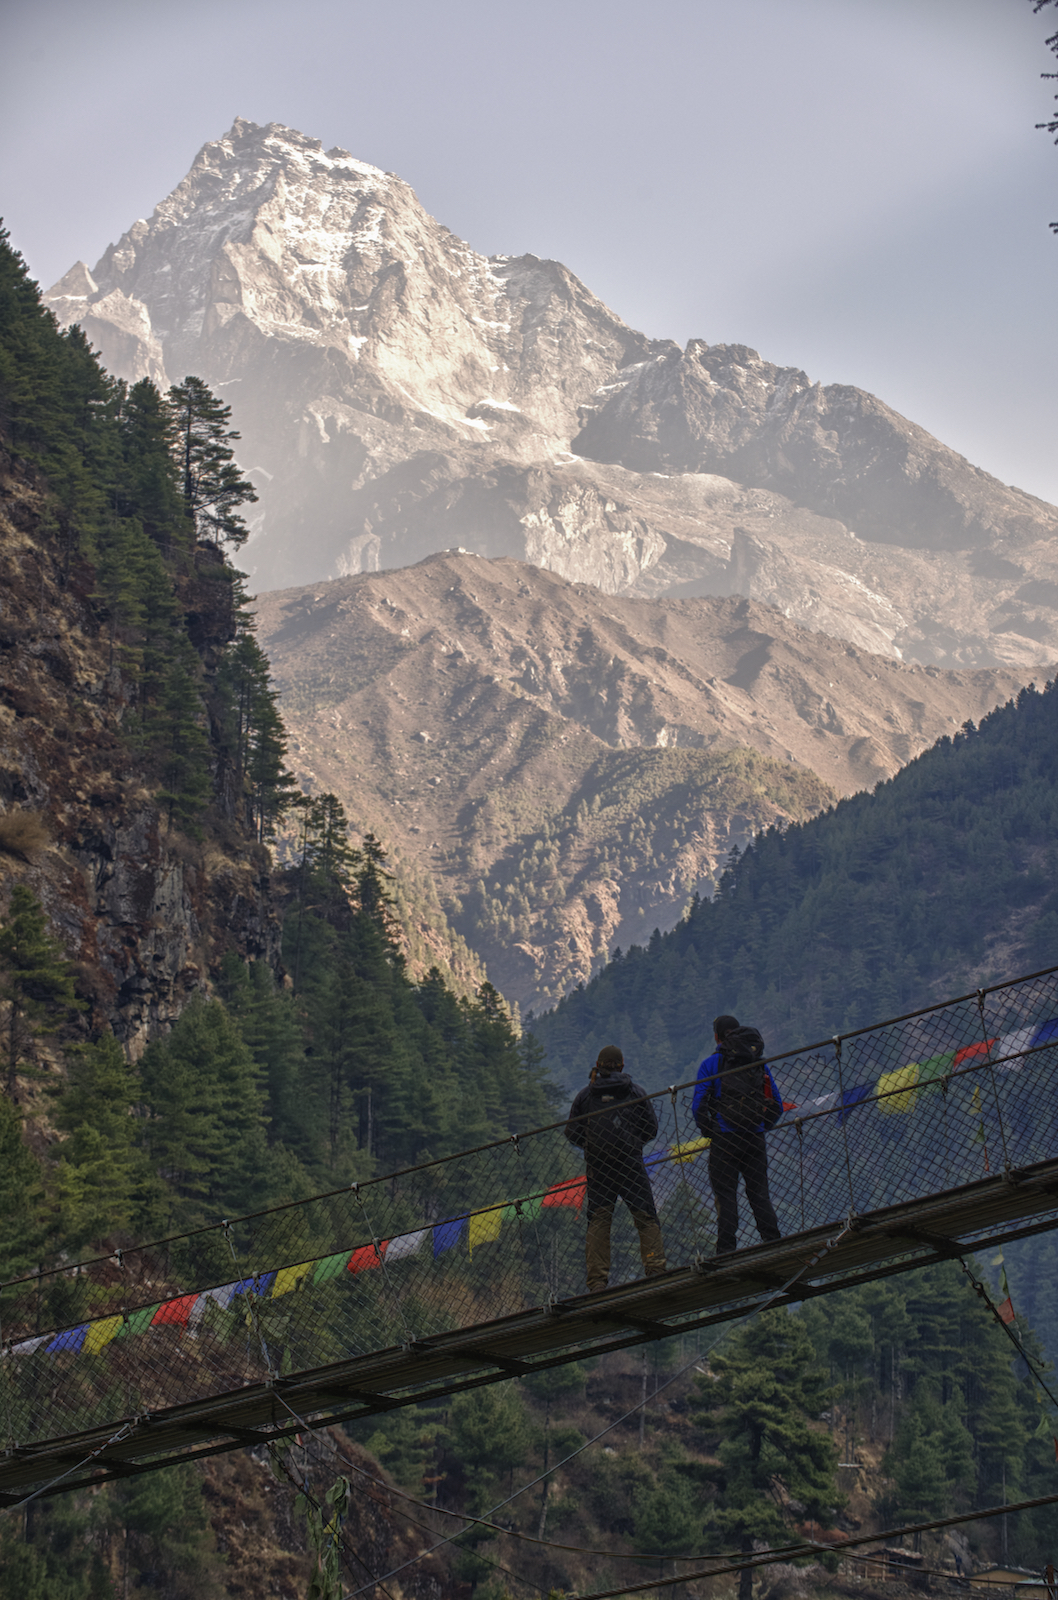 Climbers stop to enjoy the view on the way to Mount Everest base camp in the Nepal Himalayas.  Image by New Orleans based travel photographer, Marc Pagani - marcpagani.com